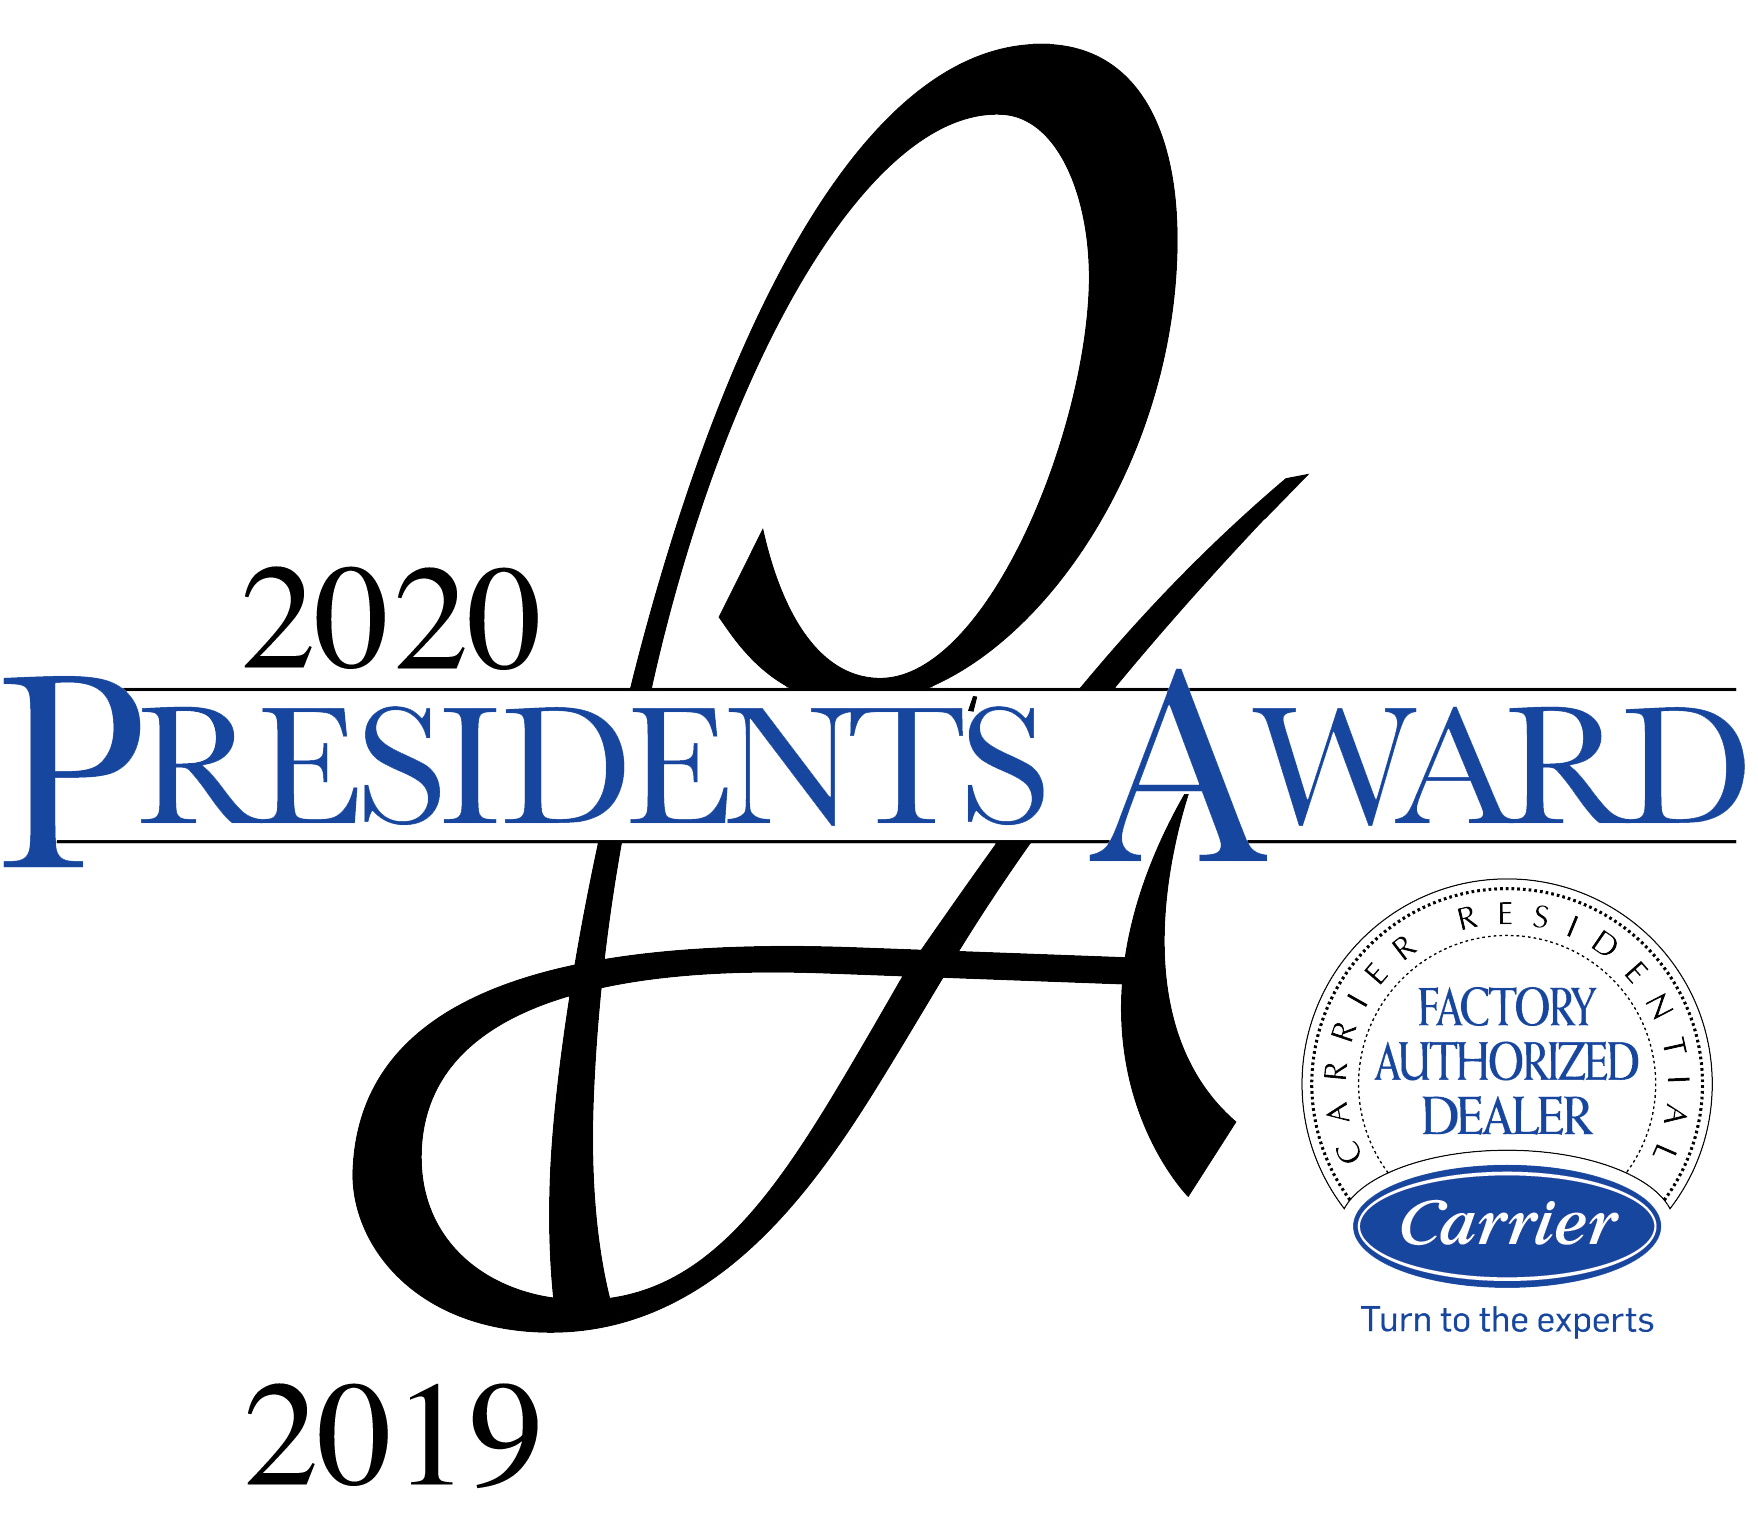 2020 President's Award from Carrier